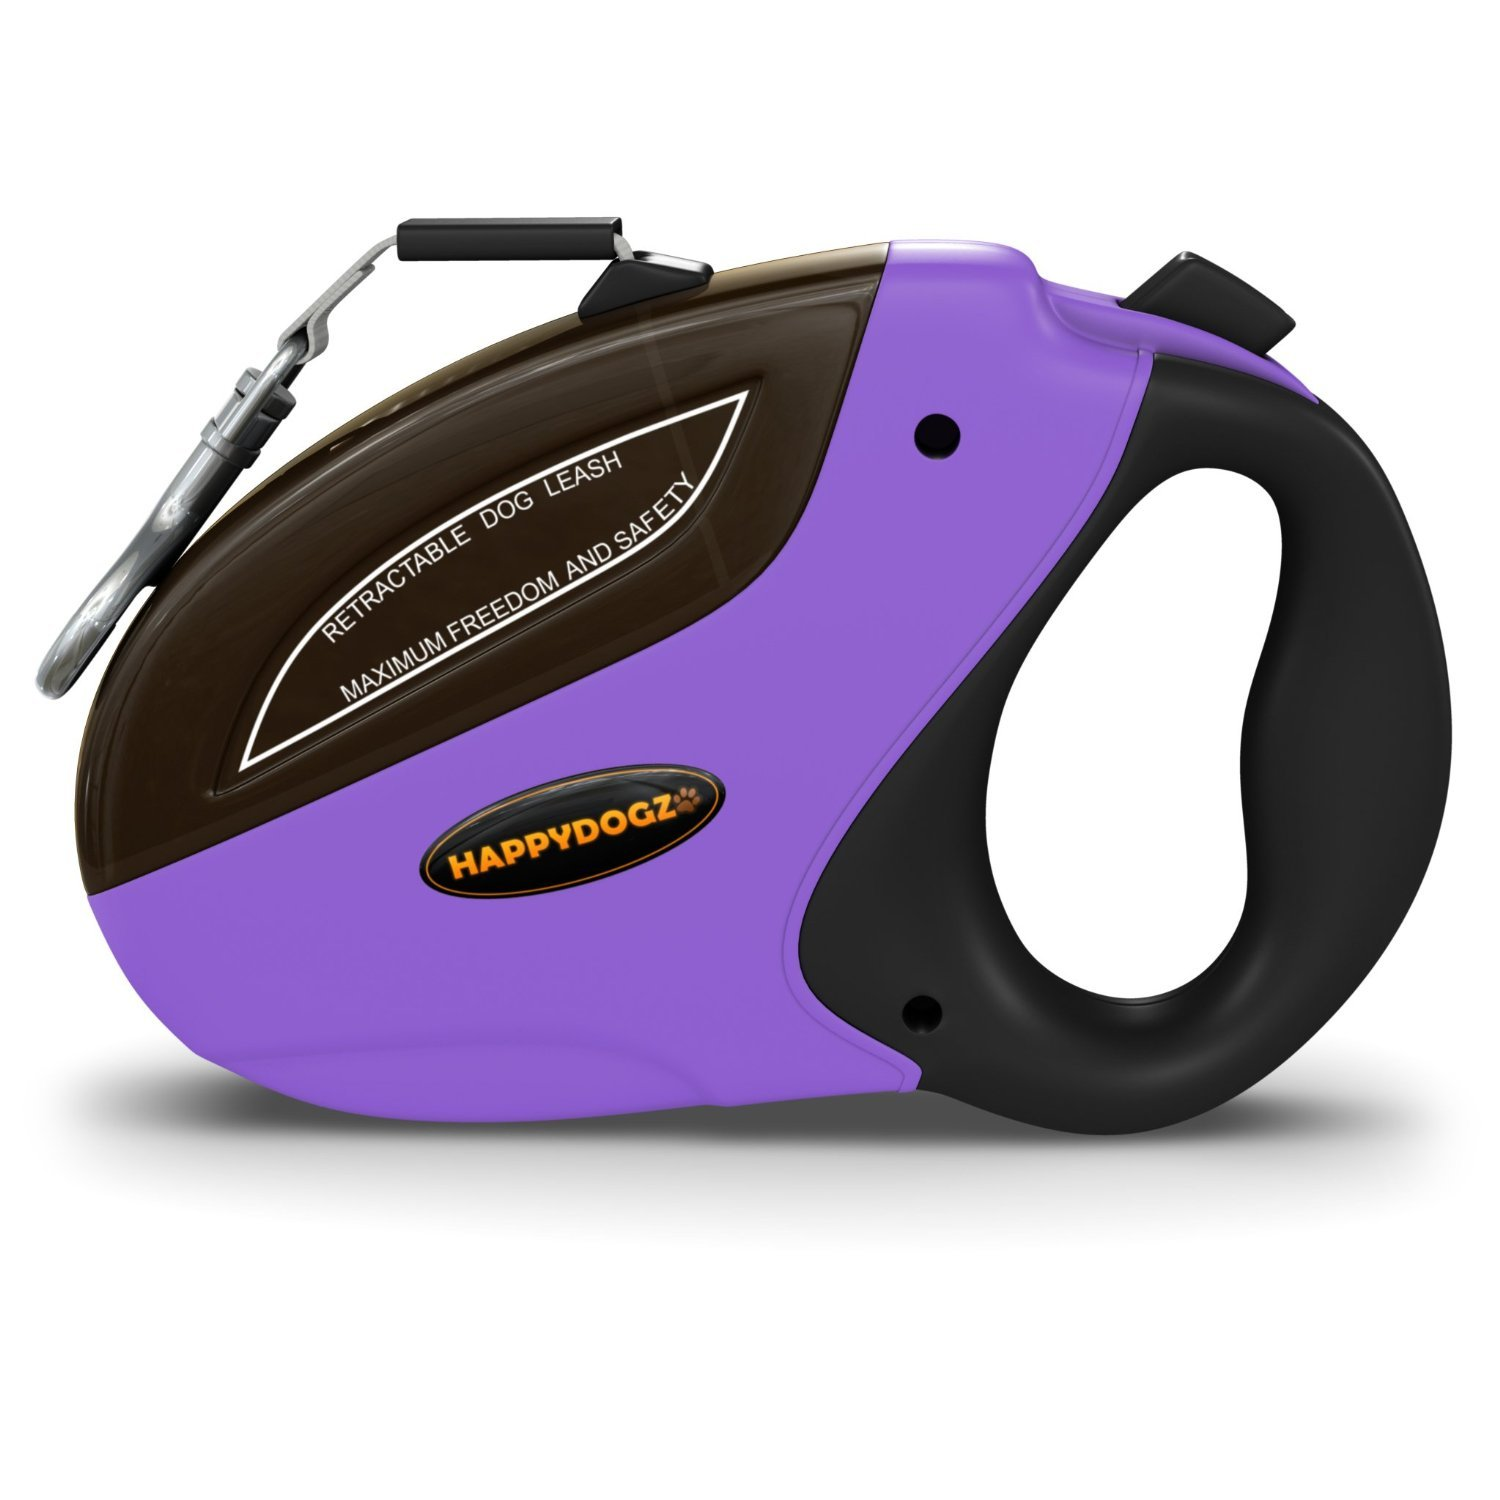 Security Pro Retractable Dog Leash Smooth Retraction, Strong Locking Mechanism and a Comfortable Ergonomic Design No Tangle Nylon Lead Extends Up to 16 feet- for Small to Medium Dogs Up to 44lbs